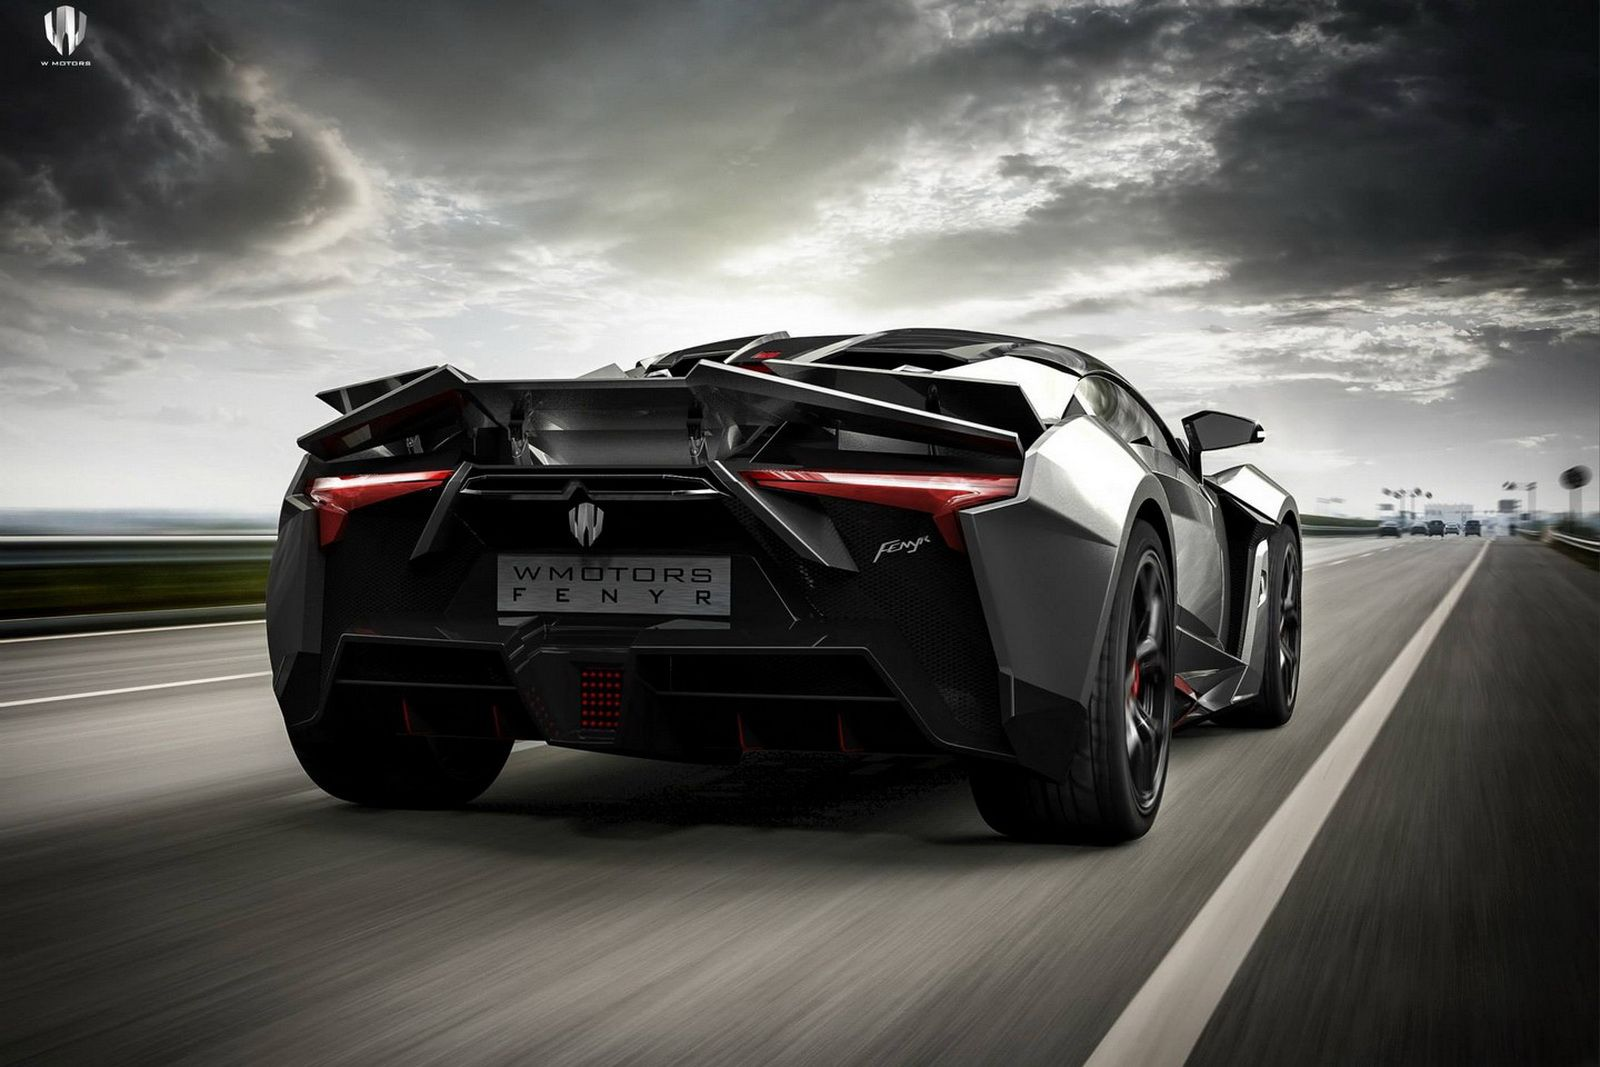 New Fenyr Supersport Revealed At Dubai, Delivers Over